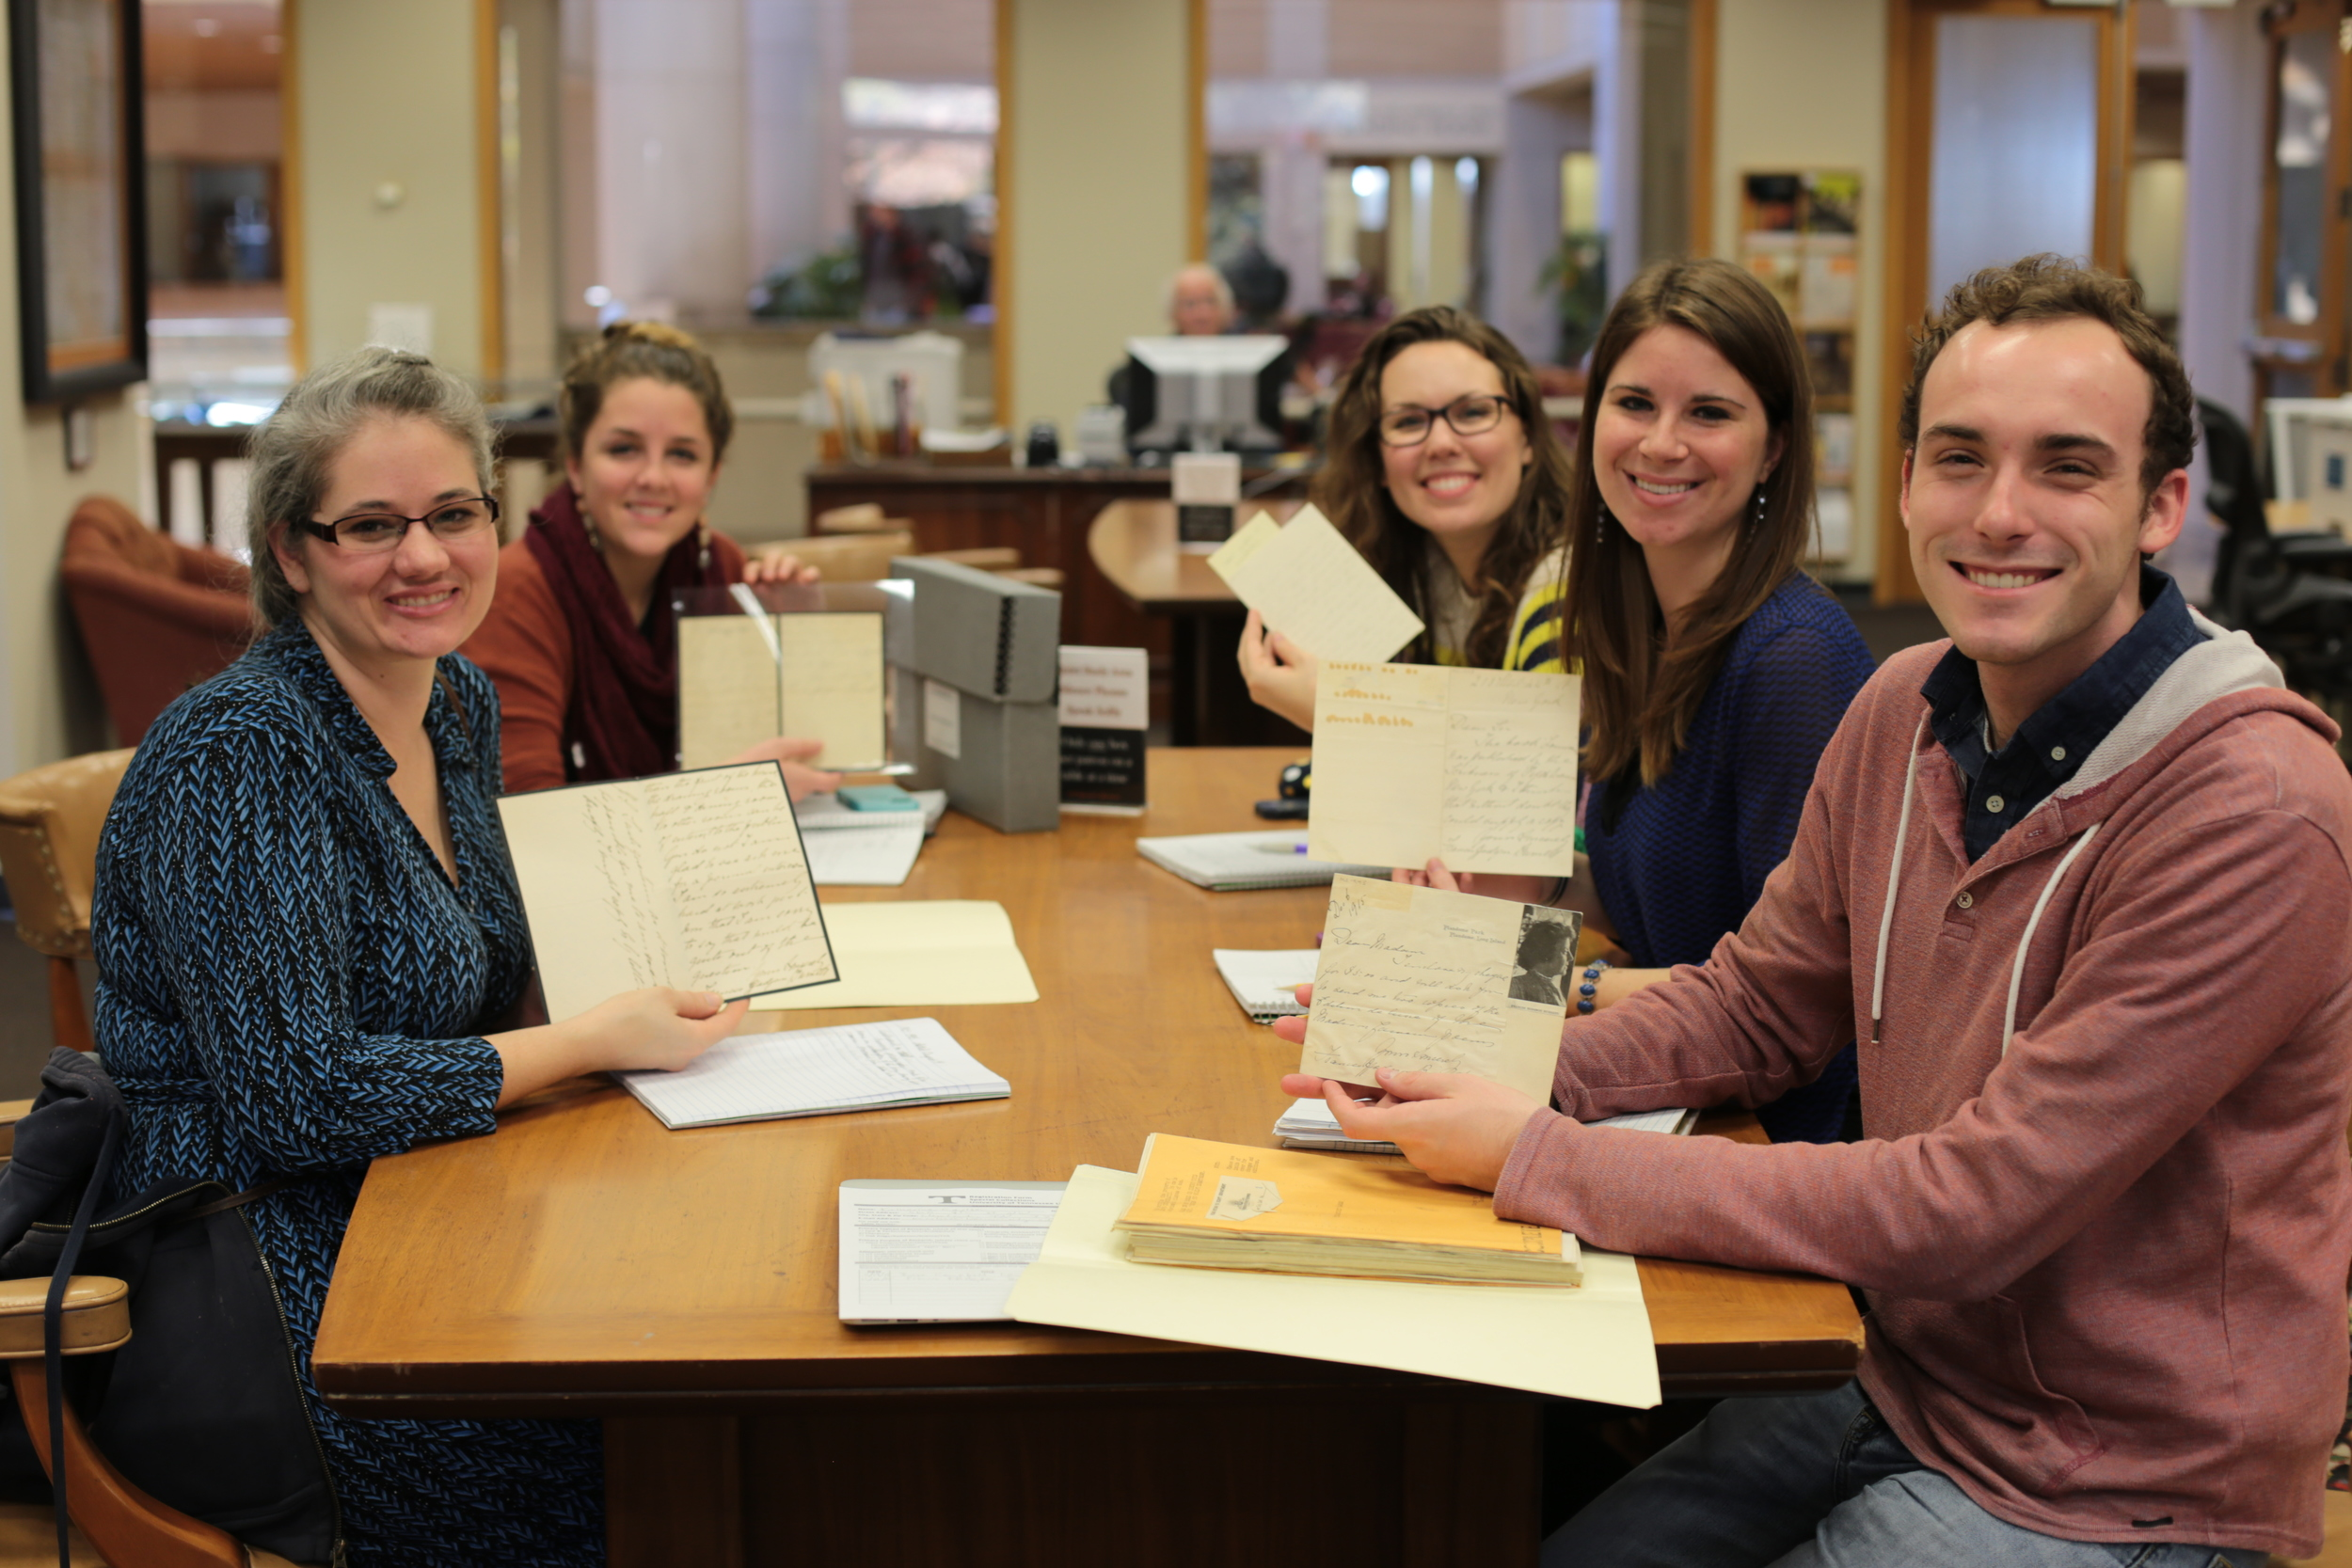 Five Lee University students with Burnett letters at the University of Tennessee - Knoxville.